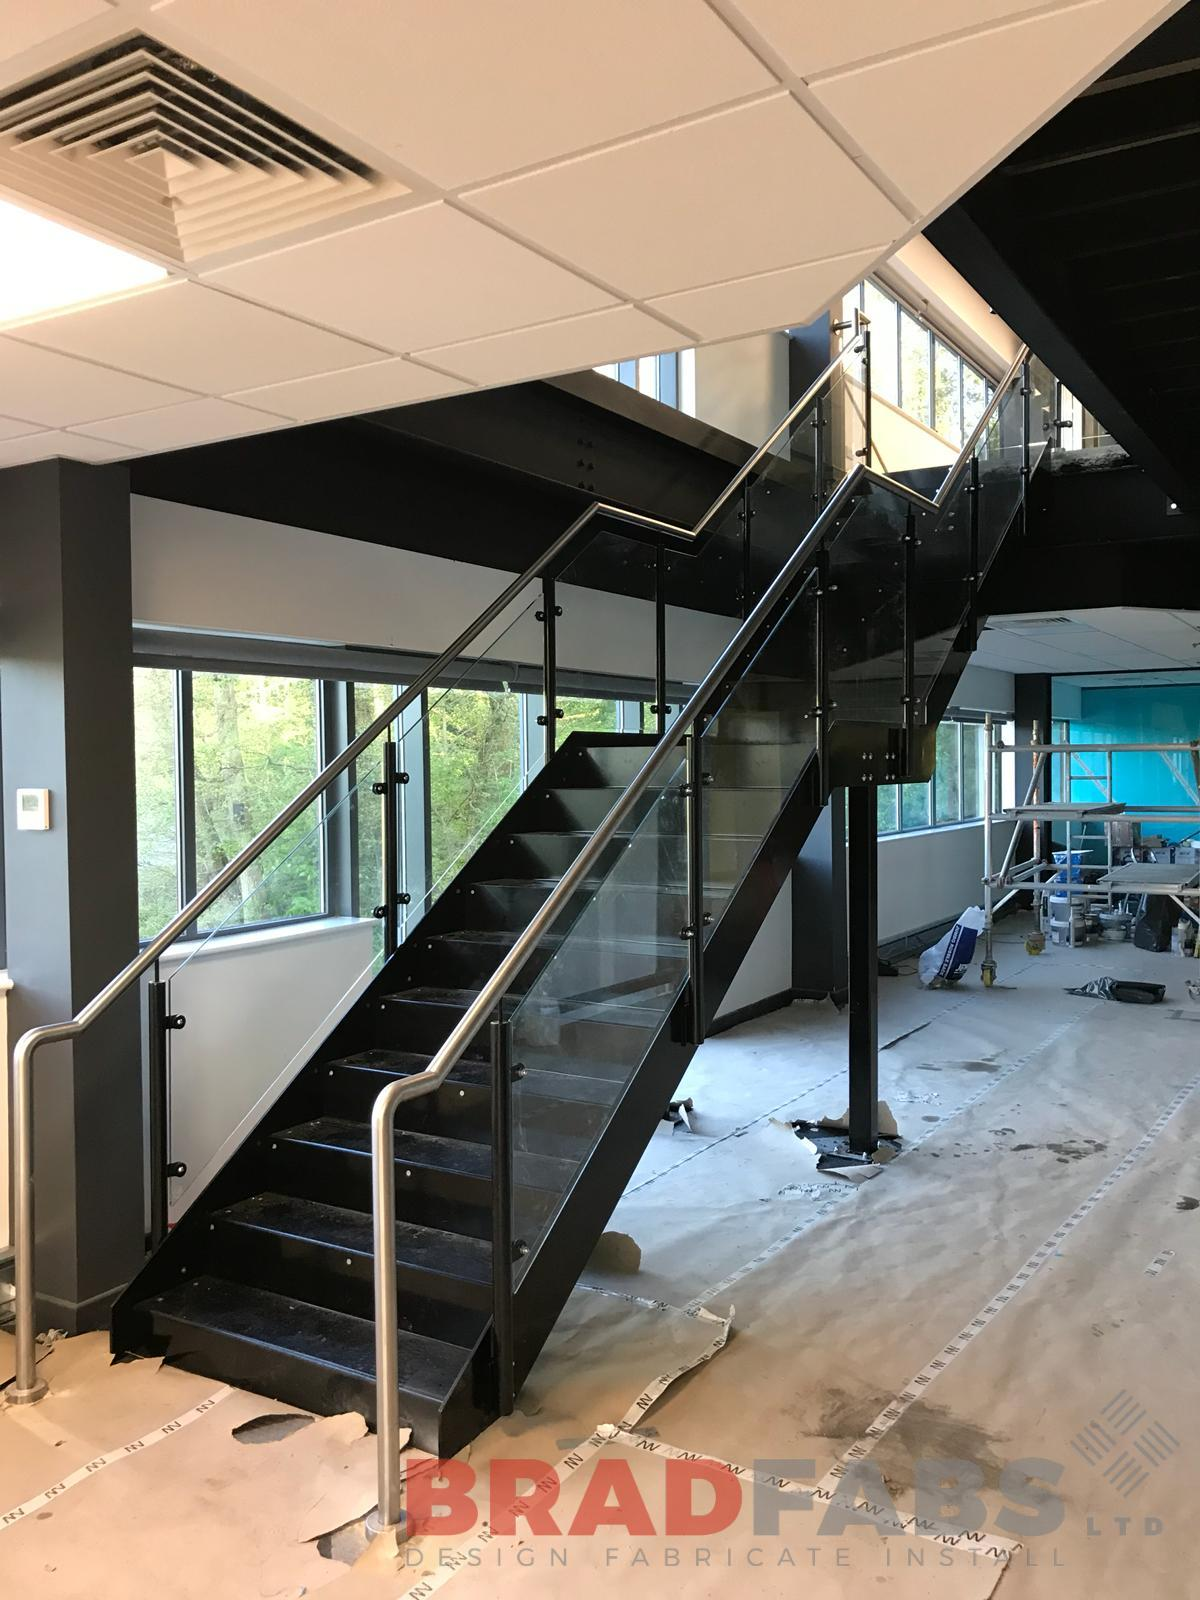 Straight staircase mild steel and powder coated with 10mm toughened safety glass infill panels and stainless steel handrail by Bradfabs